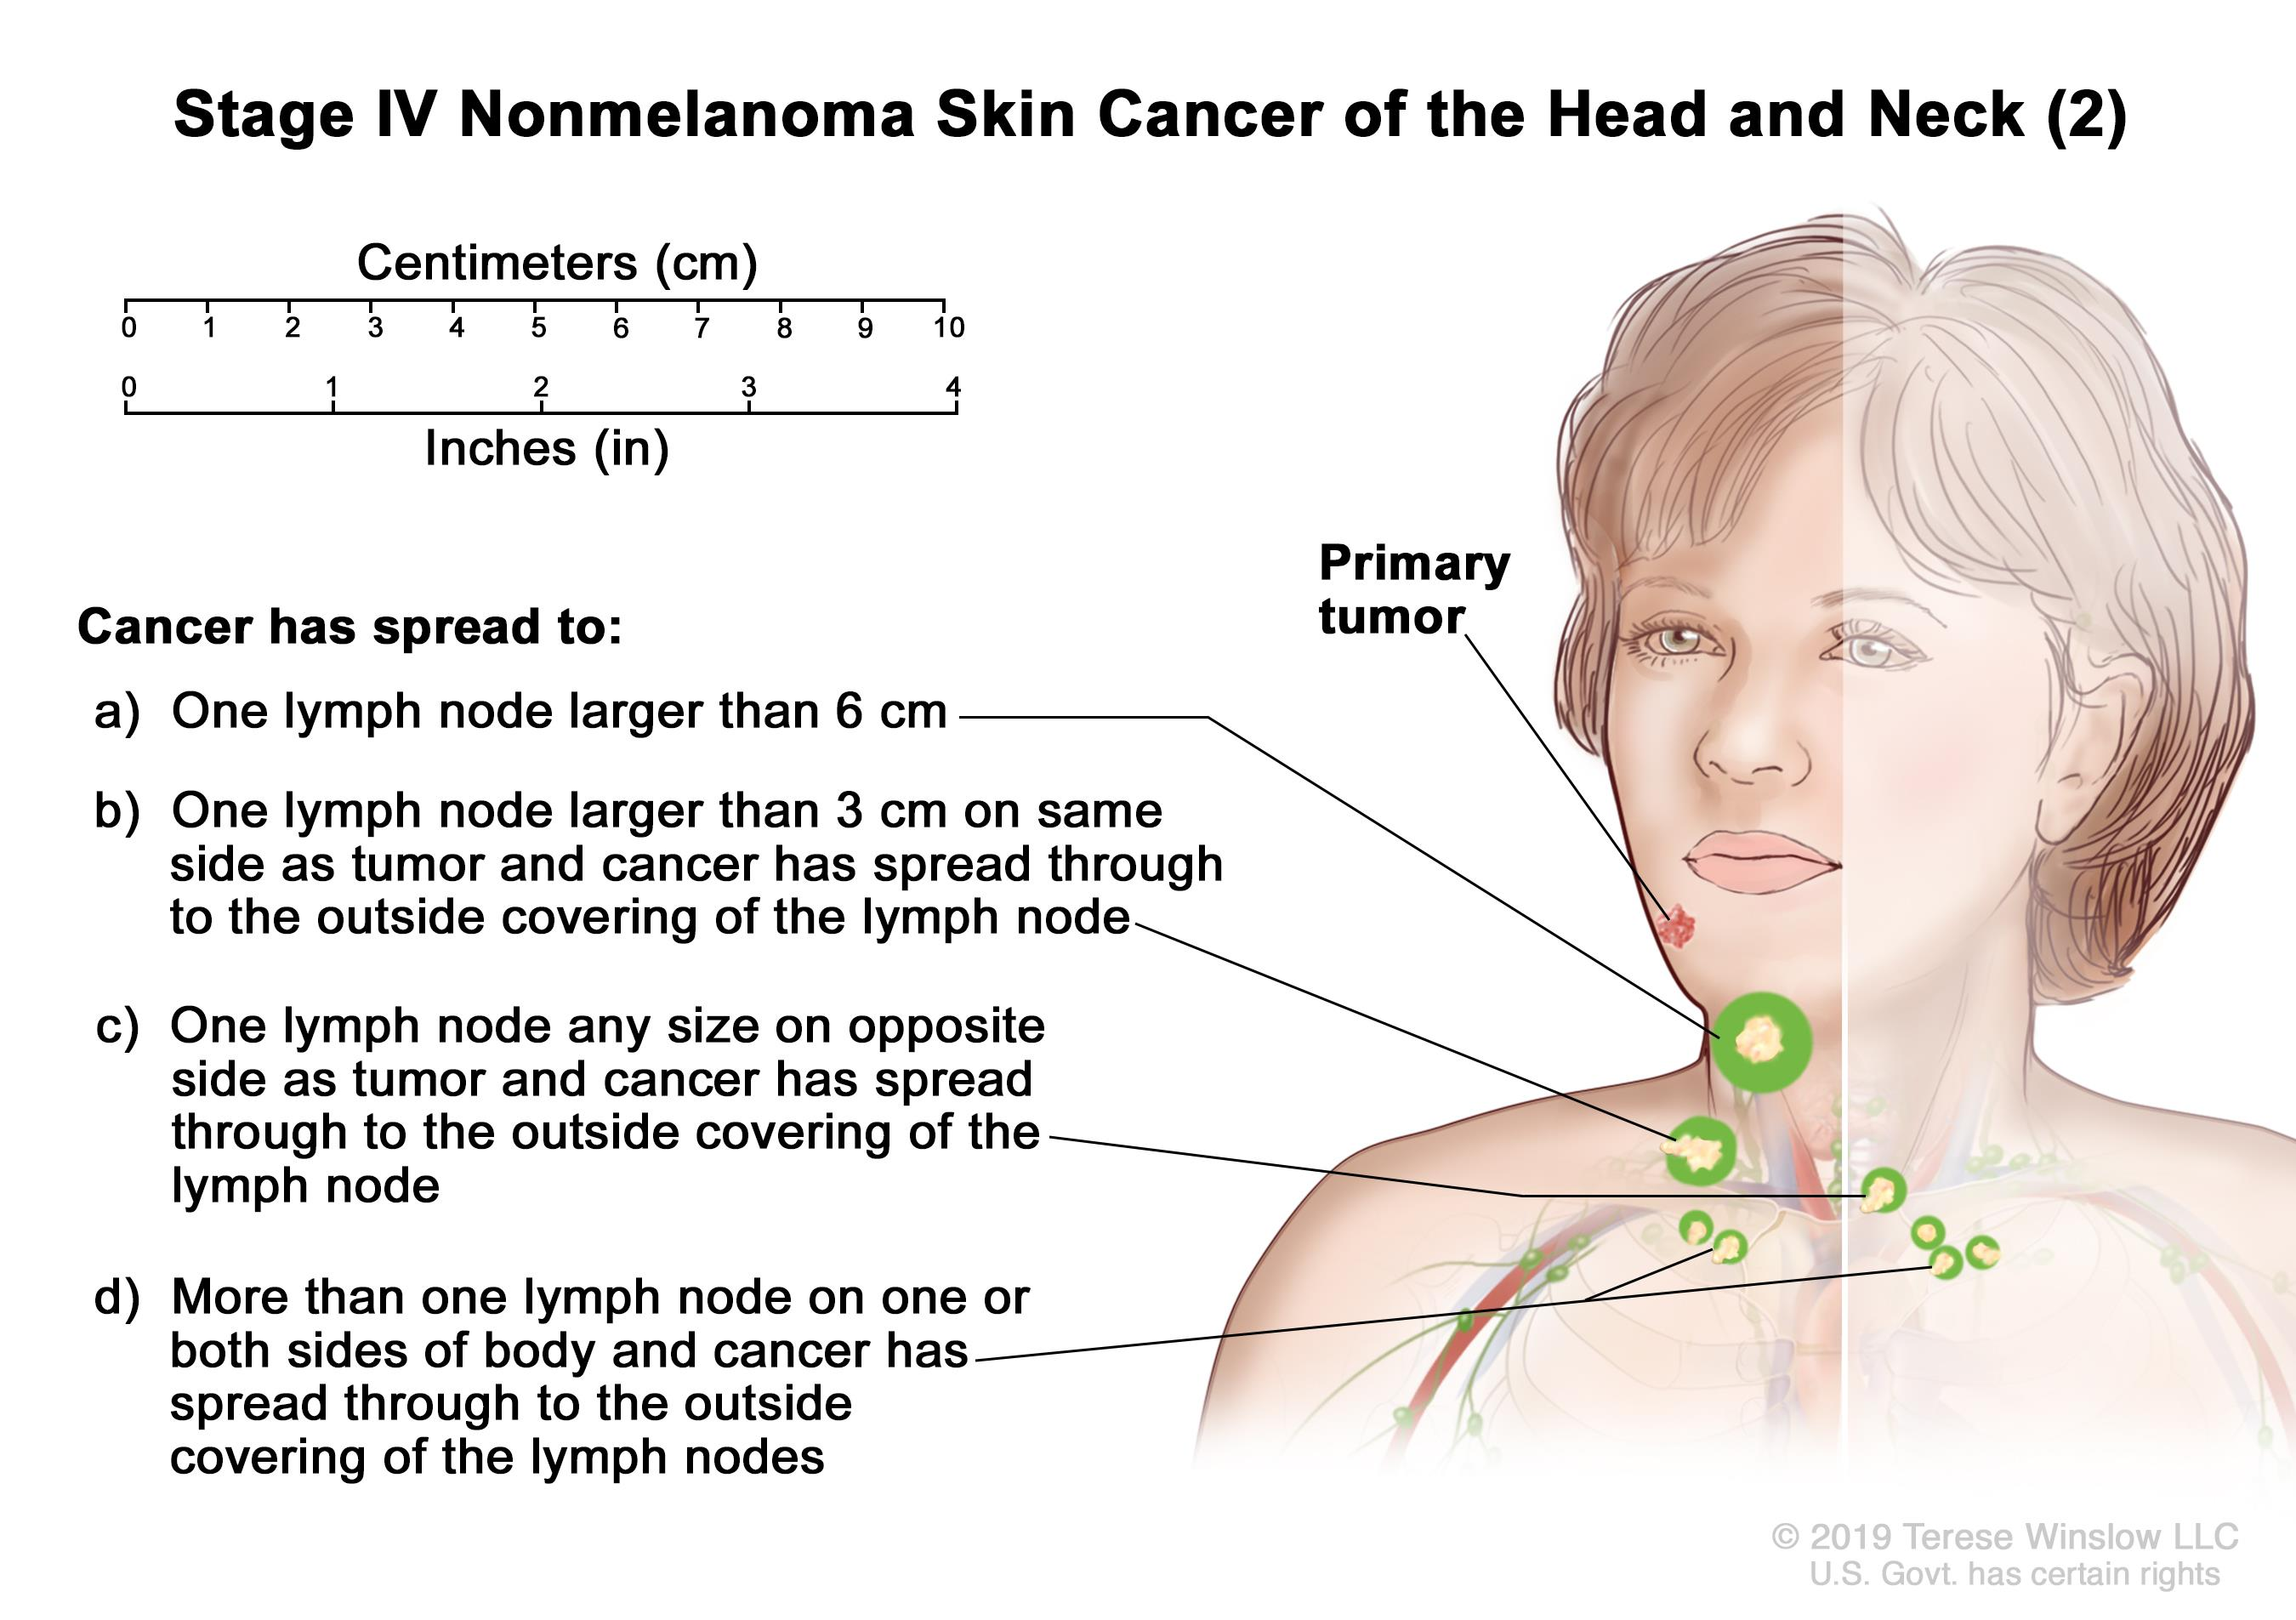 Stage IV nonmelanoma skin cancer (2); drawing shows a primary tumor in one arm and other parts of the body where nonmelanoma skin cancer may spread, including the base of the skull, rib, lung, and spine. An inset shows cancer cells spreading through the blood and lymph system to another part of the body where metastatic cancer has formed.